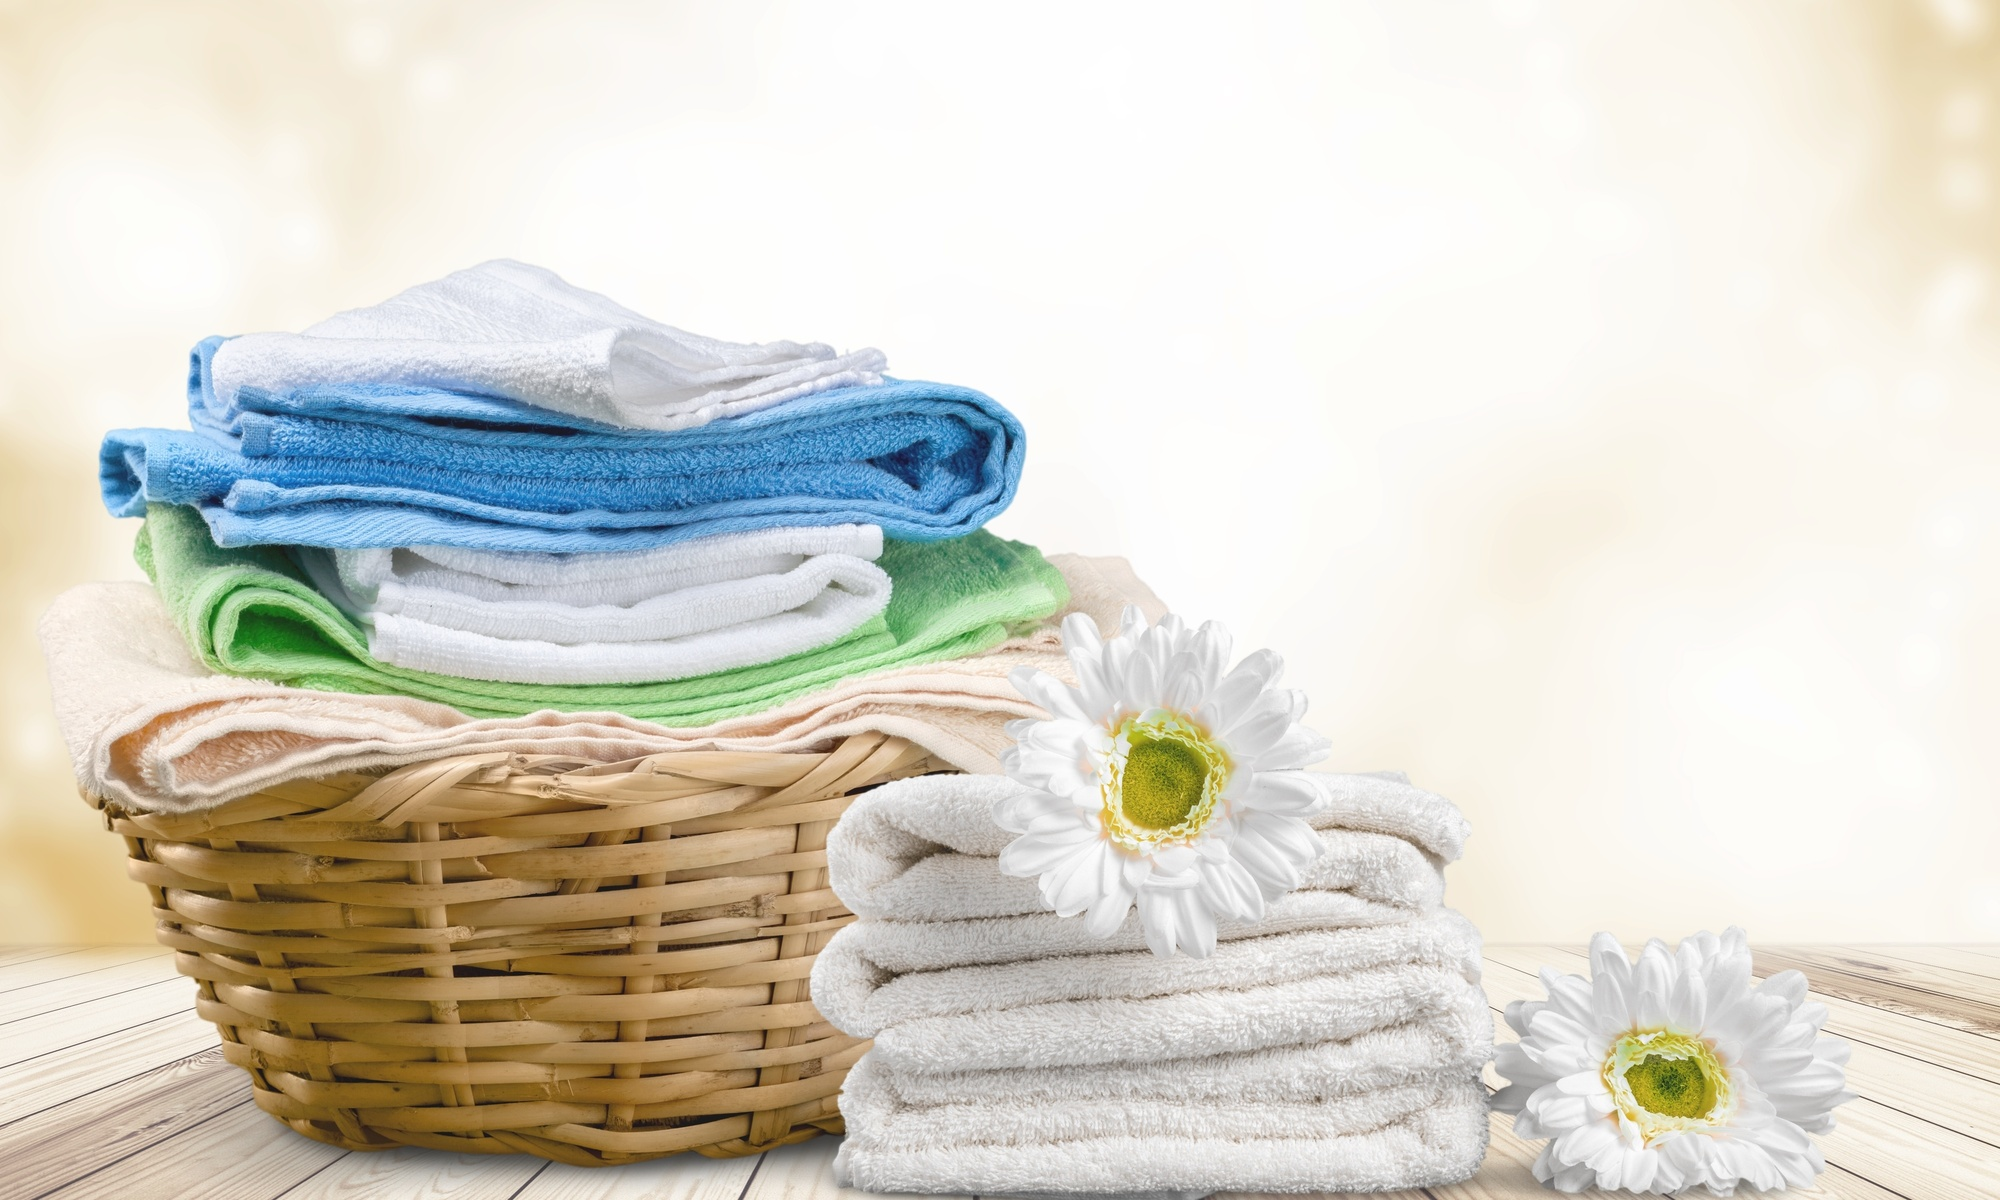 4 Insider Secrets on How to Do Laundry Properly